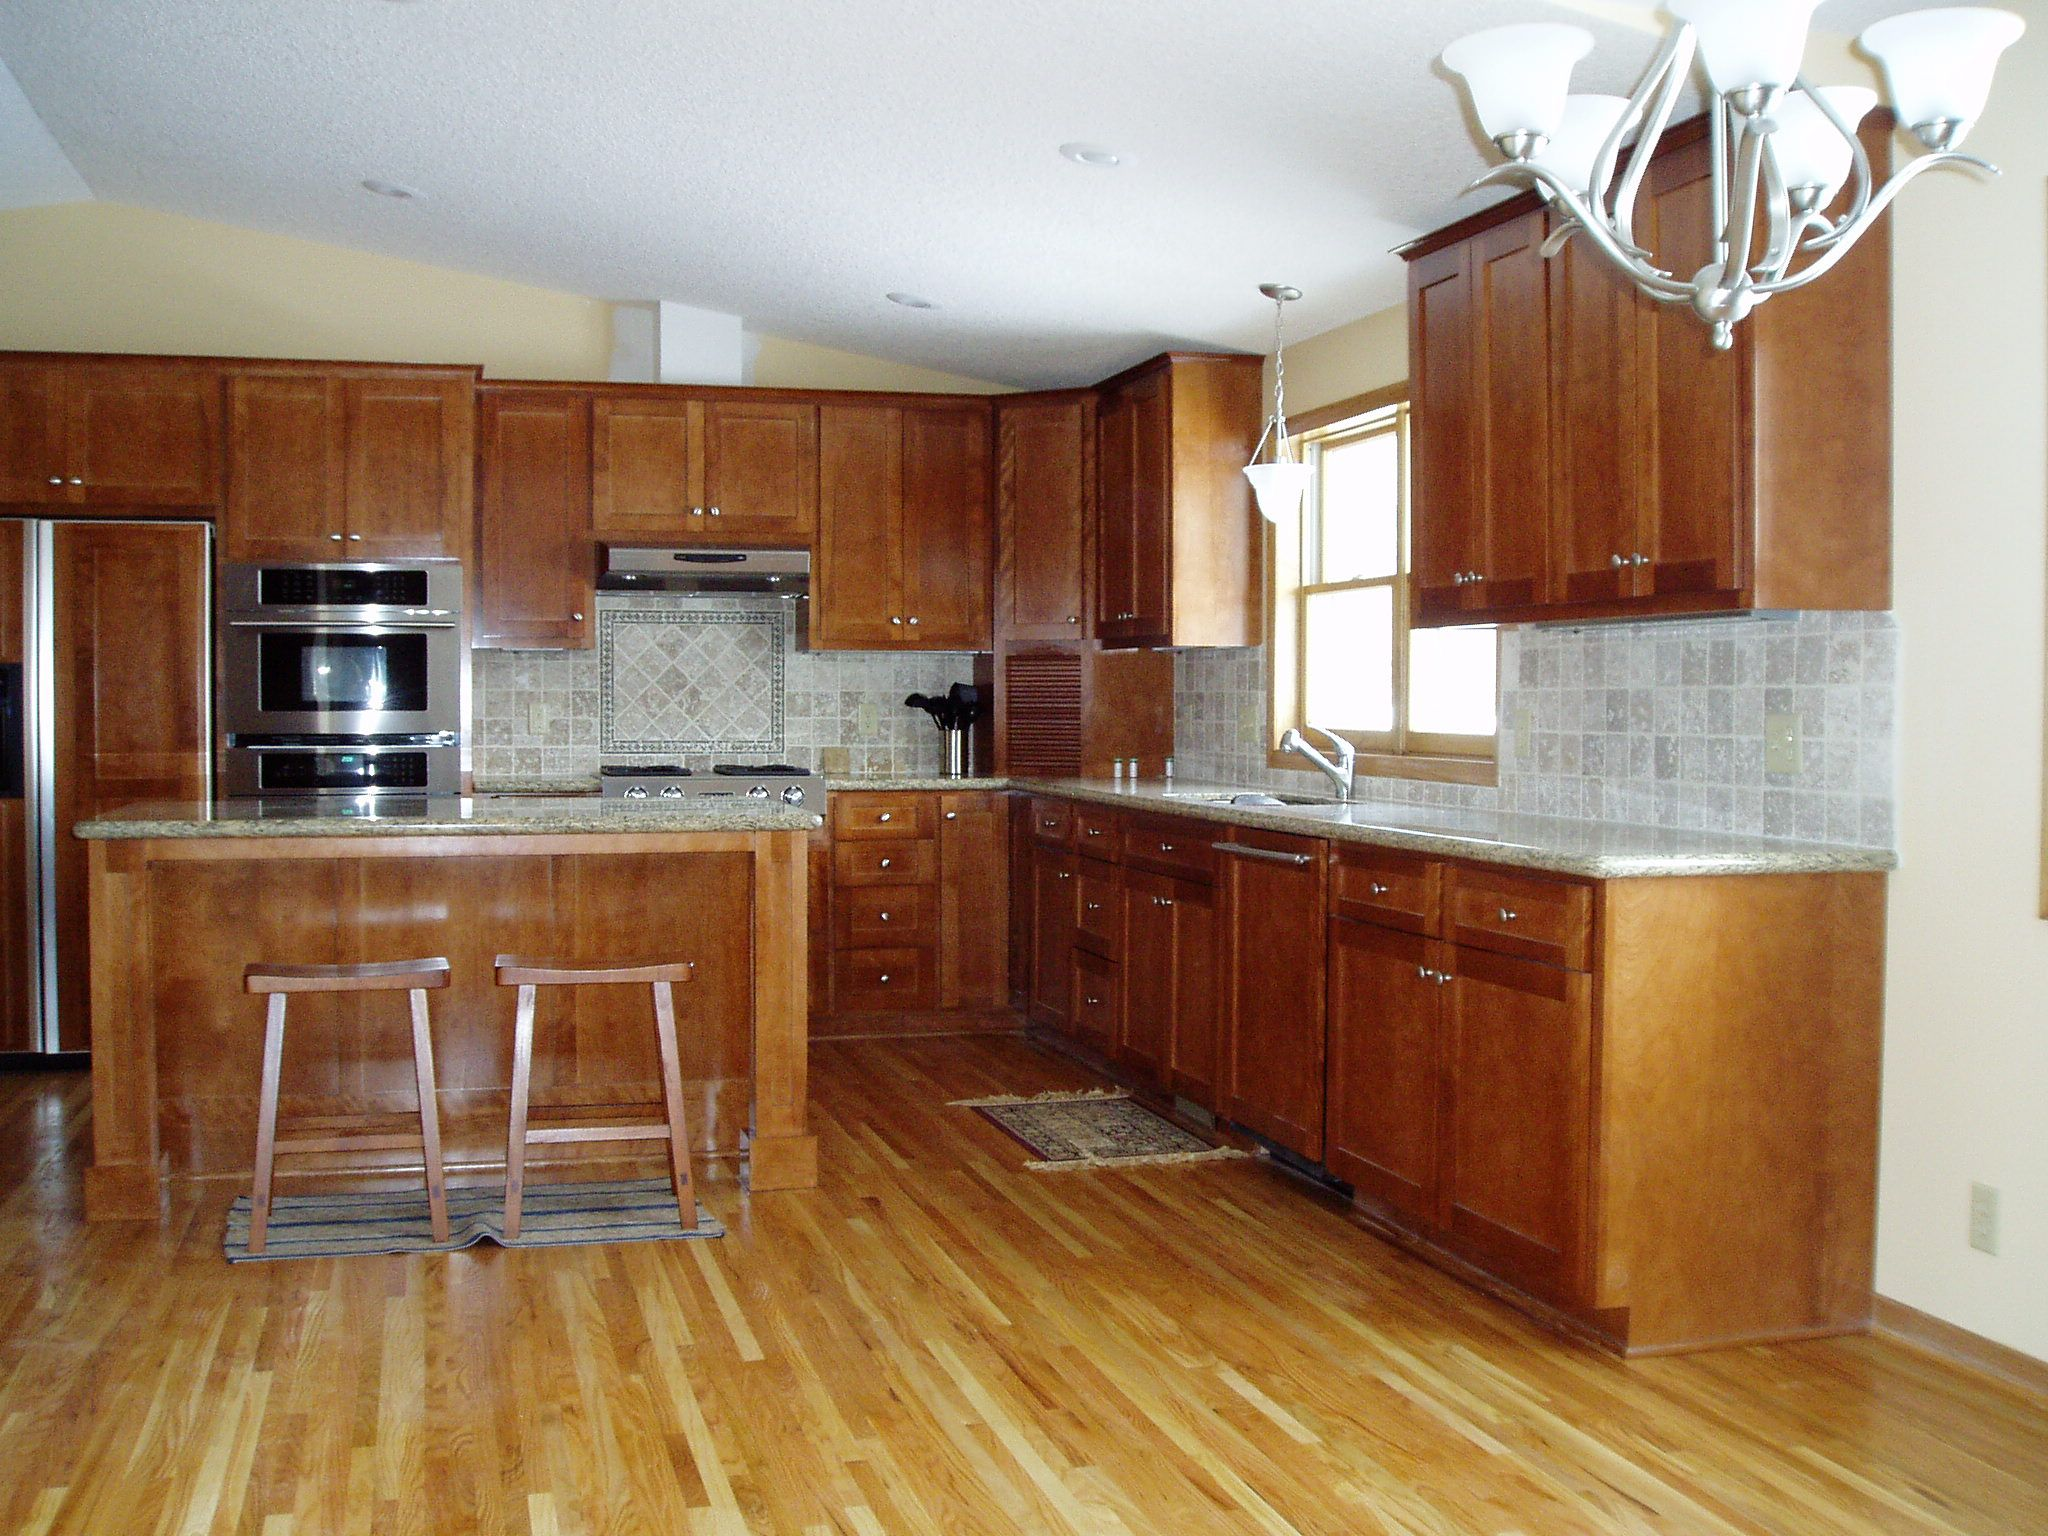 Oak Floor Cabinets Wood Flooring That Goes Well With Honey Oak Cabinets For